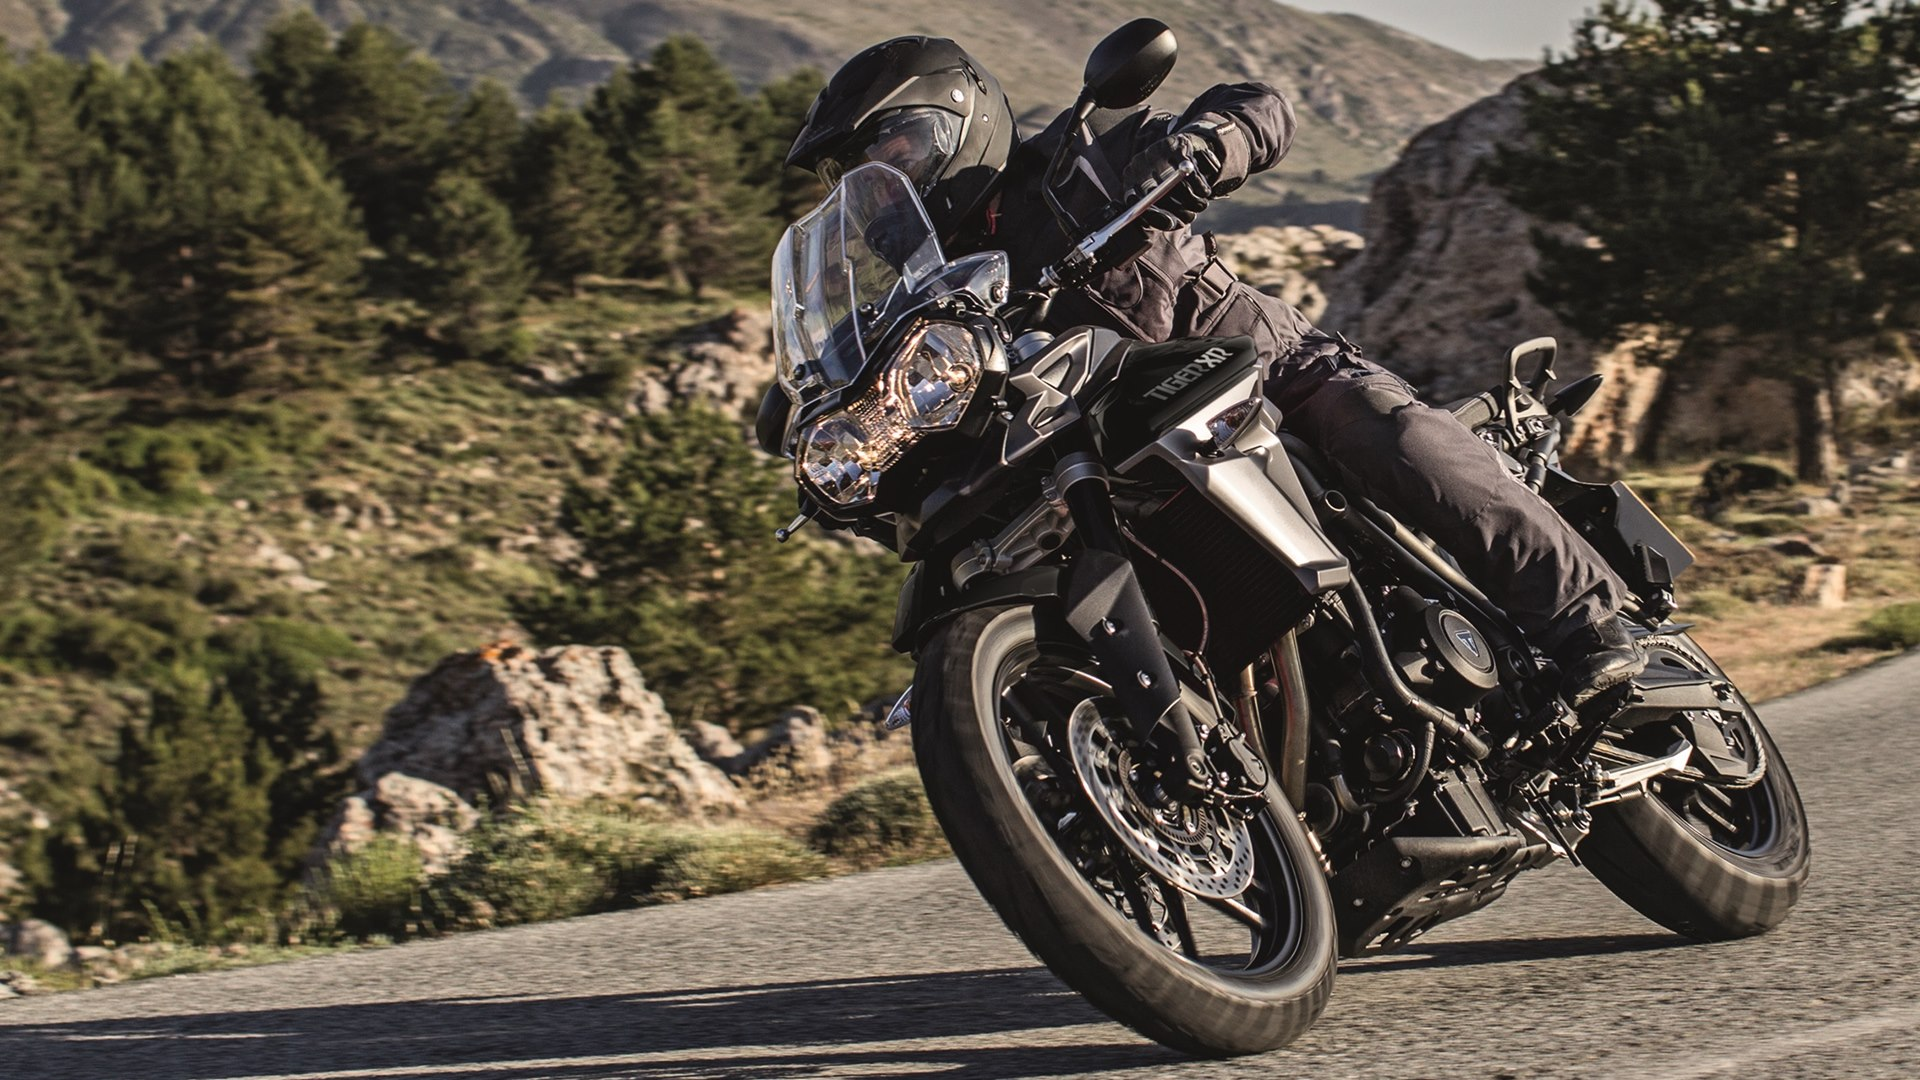 Triumph Tiger 800 XR launched in India